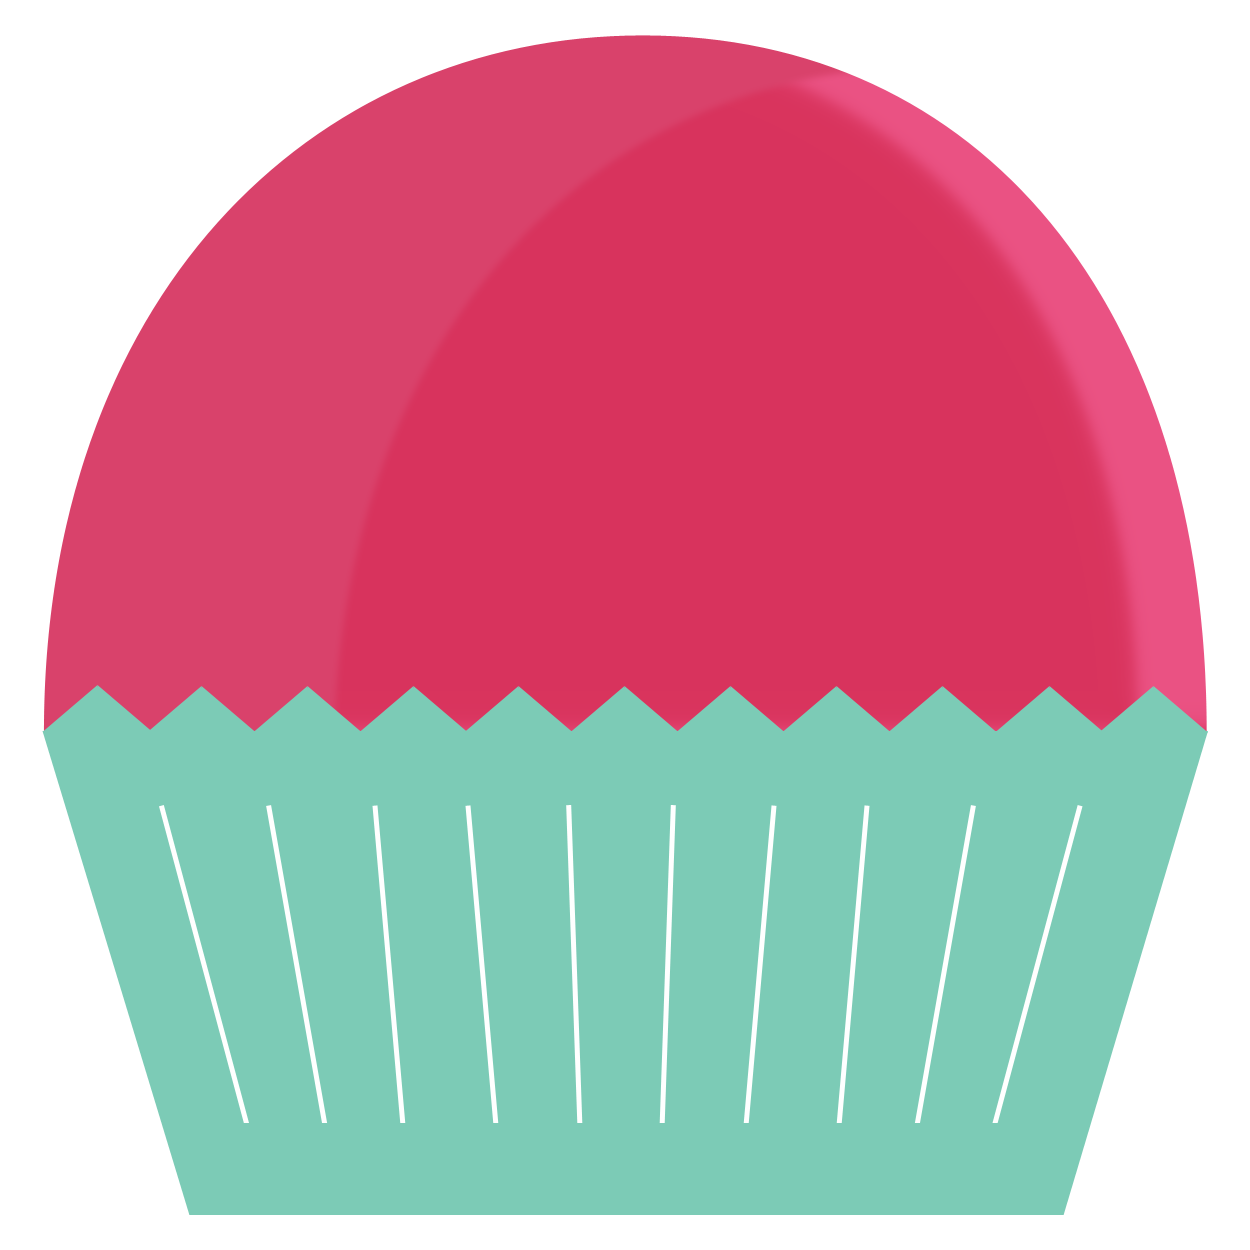 Muffins clipart outline. Cupcake watermelon frames illustrations